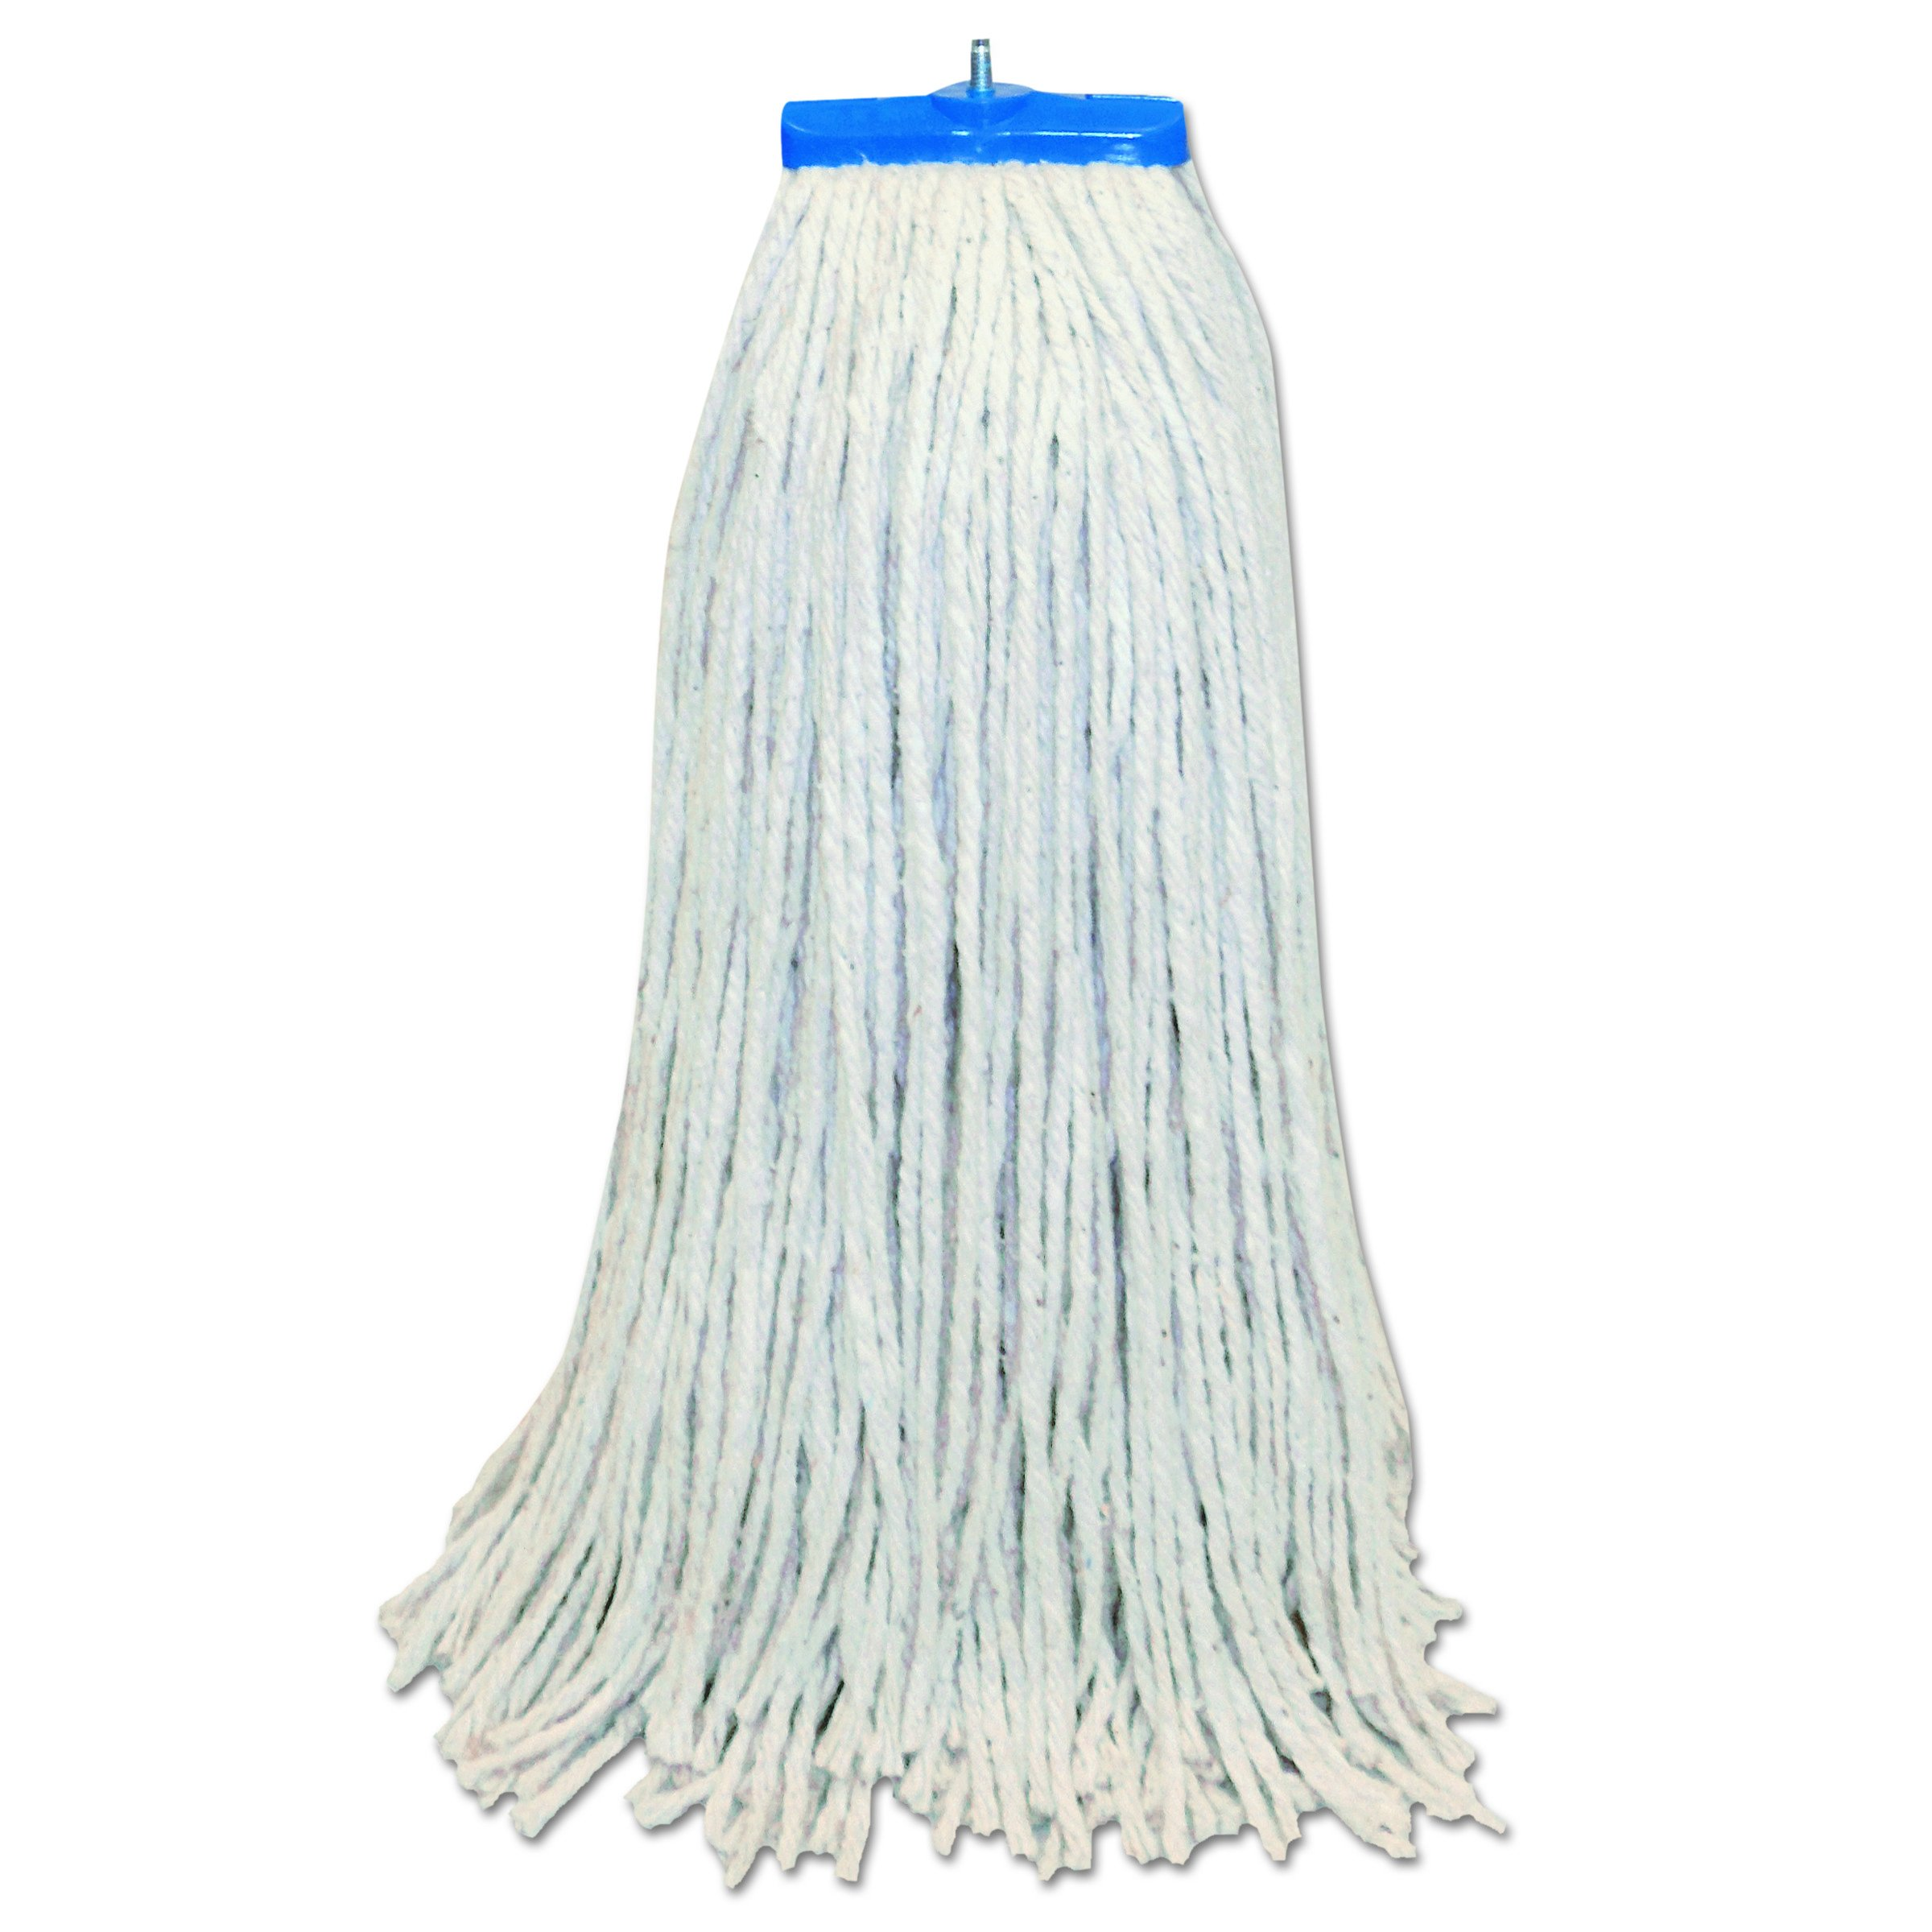 Boardwalk CM22024 Mop Head, Lie-Flat Head, Cotton Fiber, 24 oz, White (Case of 12)